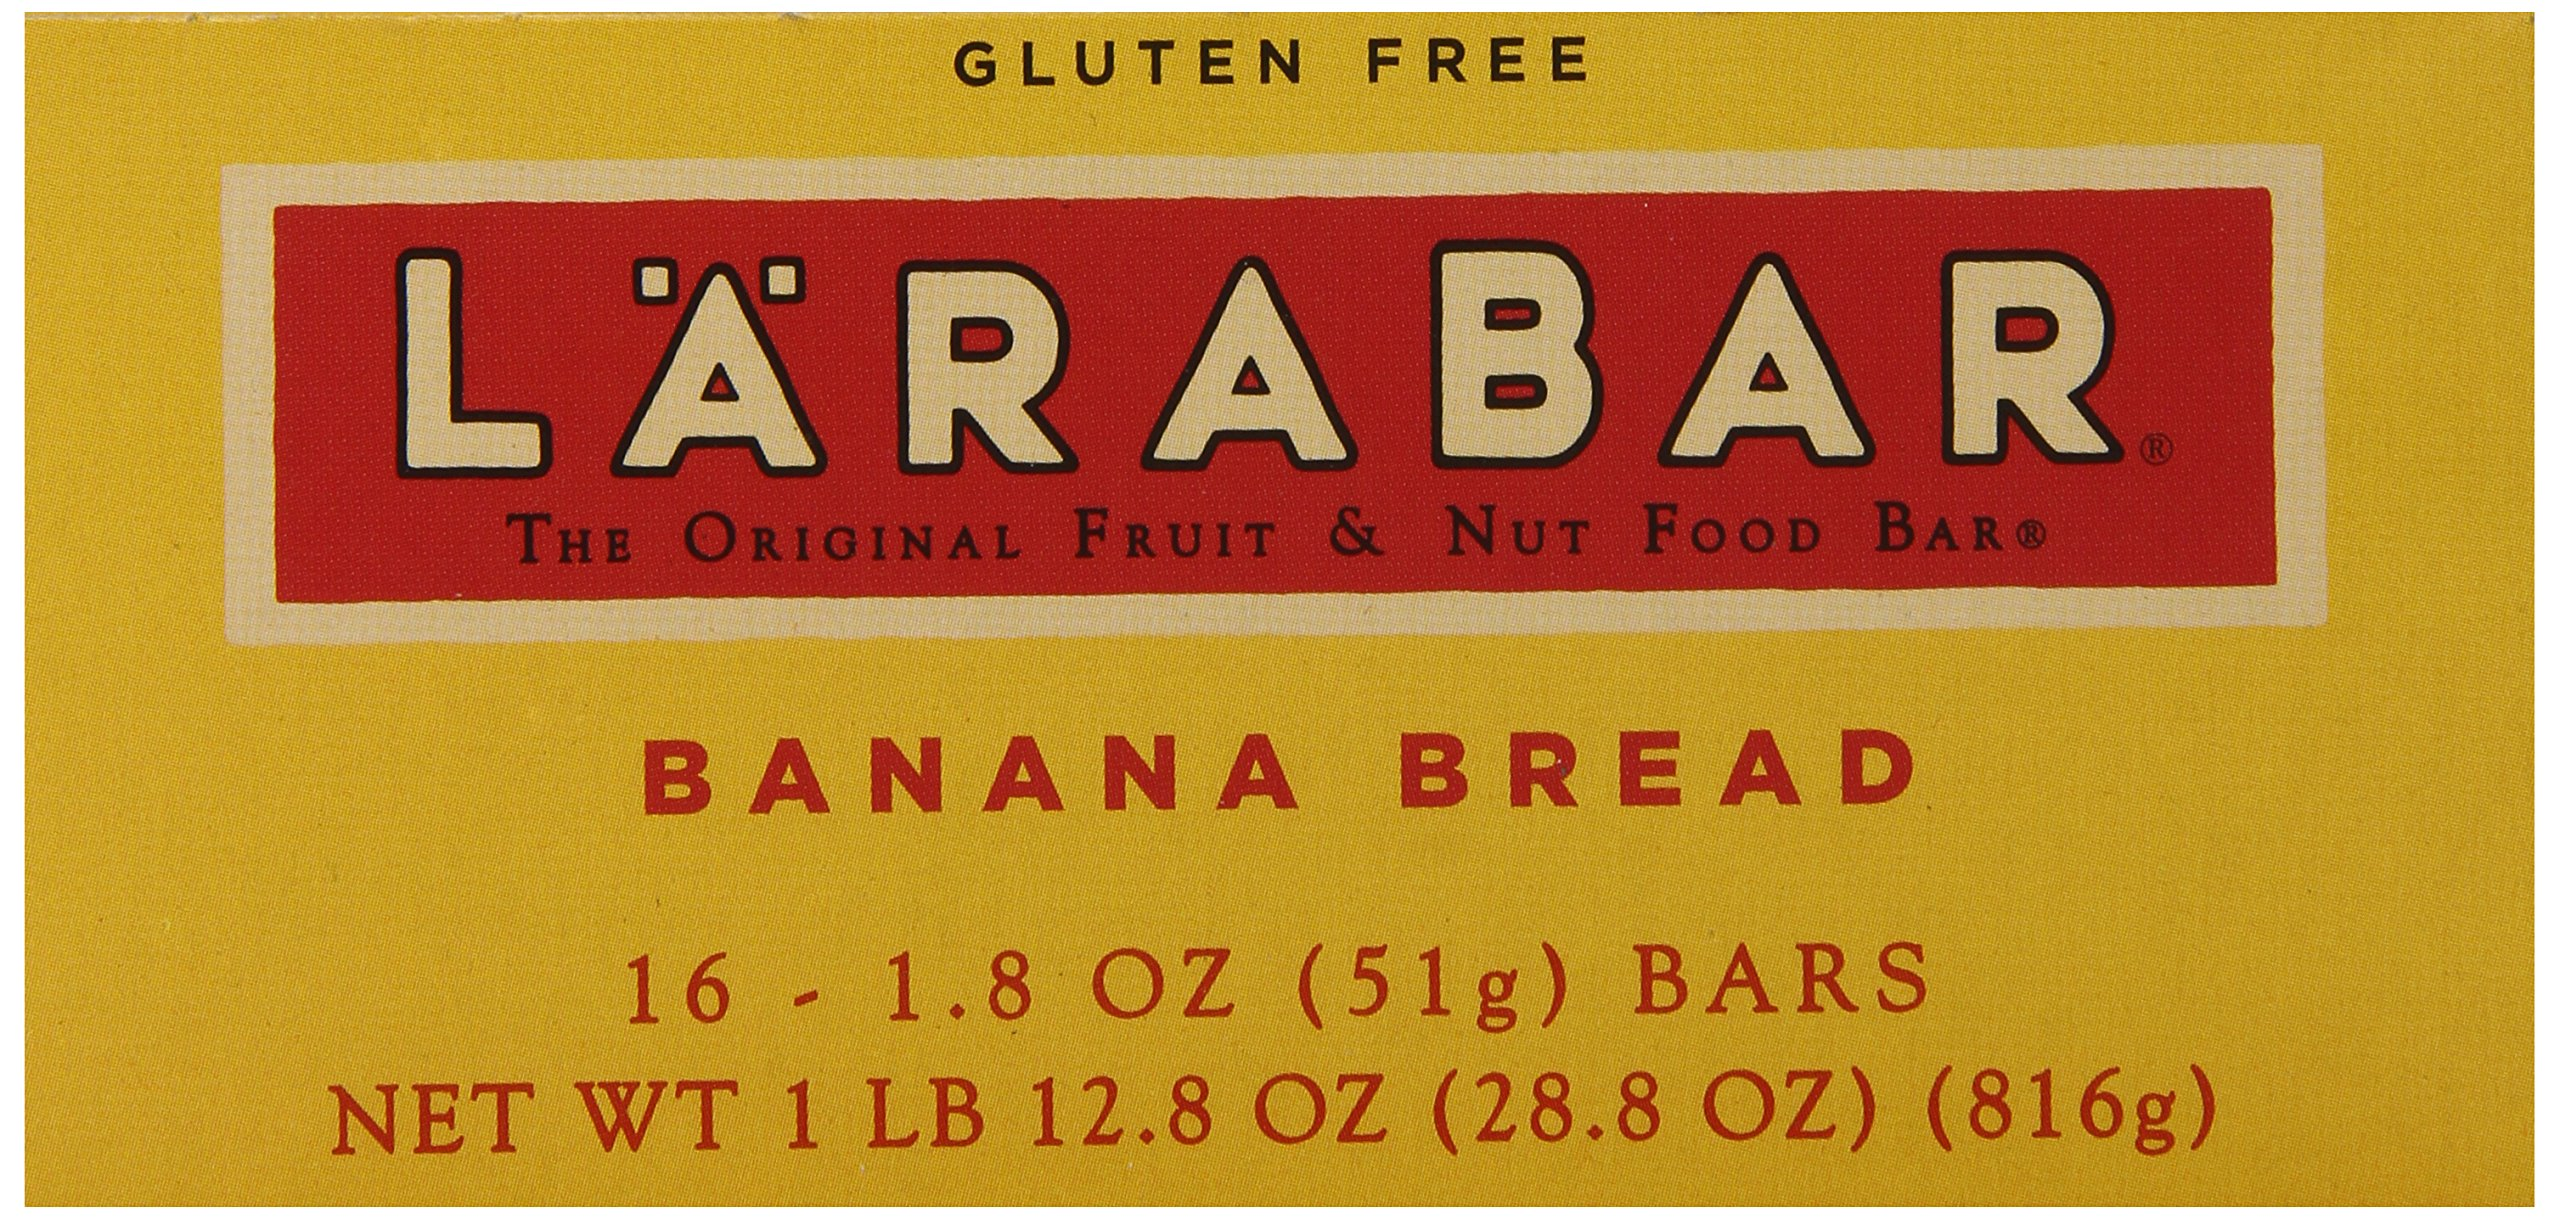 Larabar Gluten Free Bar, Banana Bread, 1.8 oz Bars (16 Count), Whole Food Gluten Free Bars, Dairy Free Snacks by LÄRABAR (Image #6)